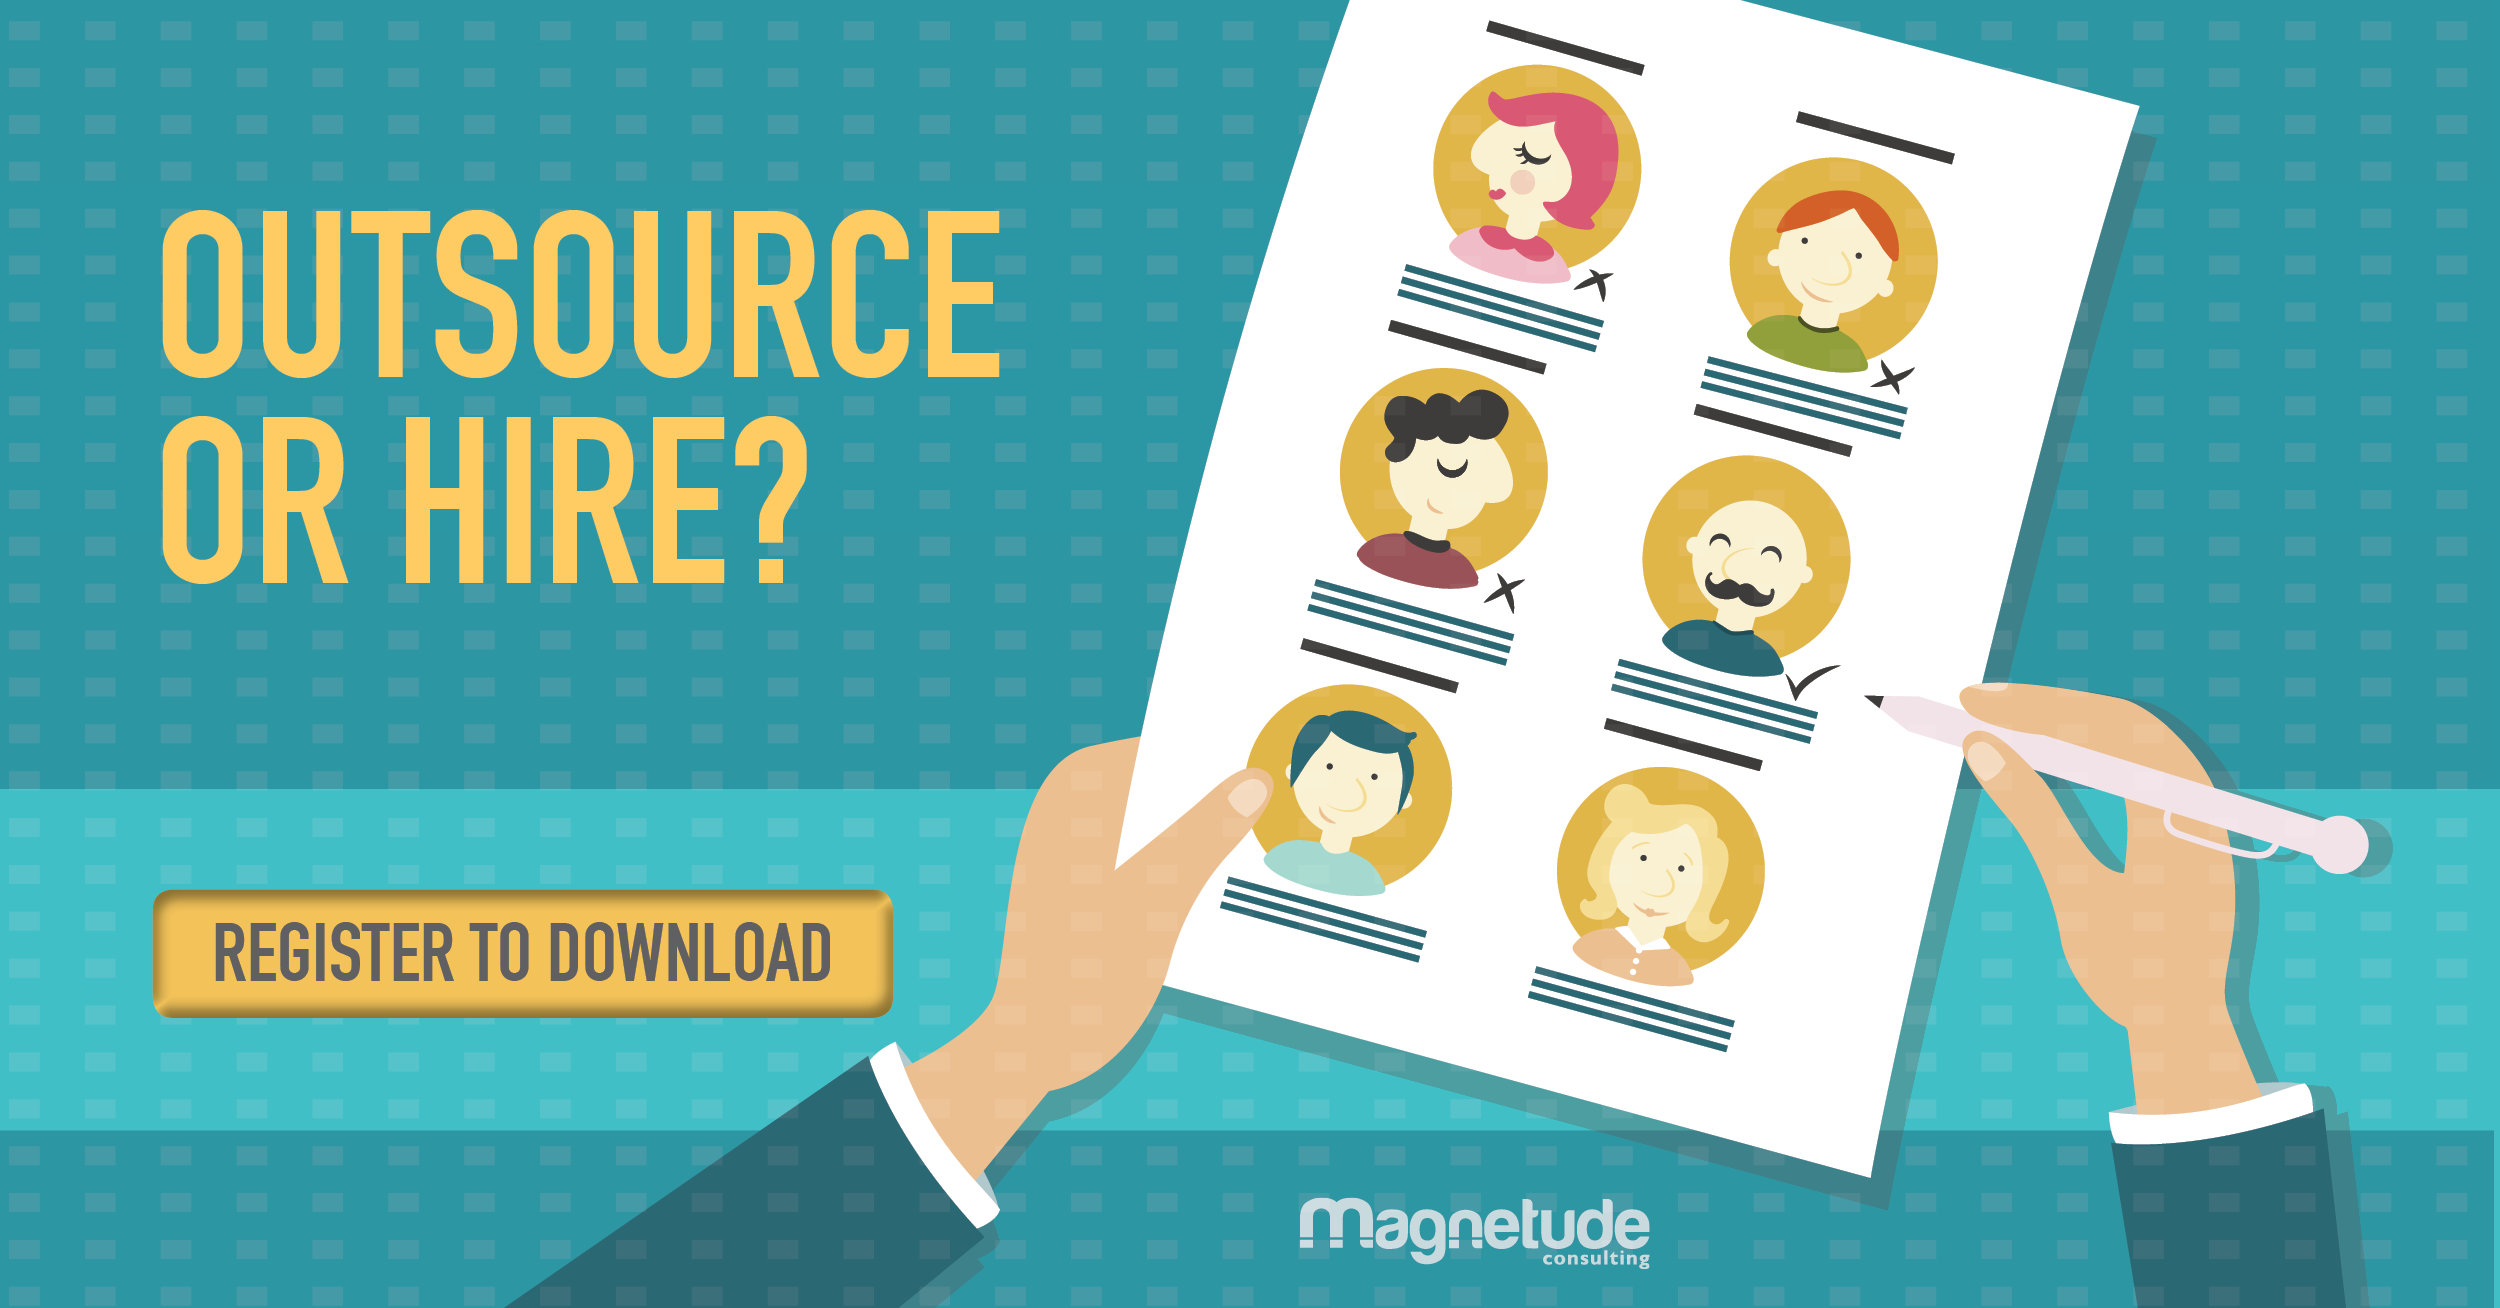 Mag_Ebook_OutsourceHire_FB_Ad-1.png